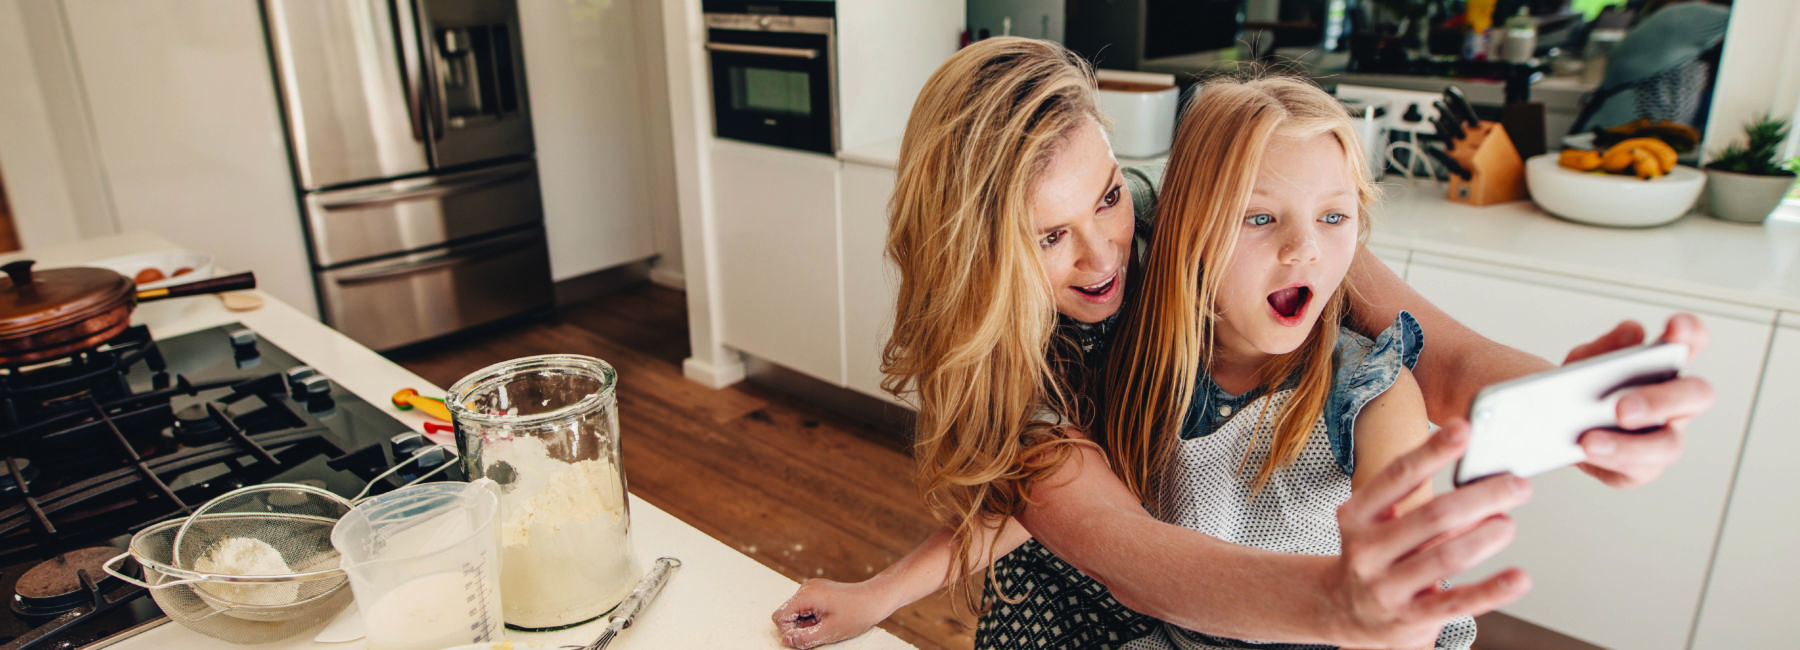 mom and daughter in kitchen taking photo